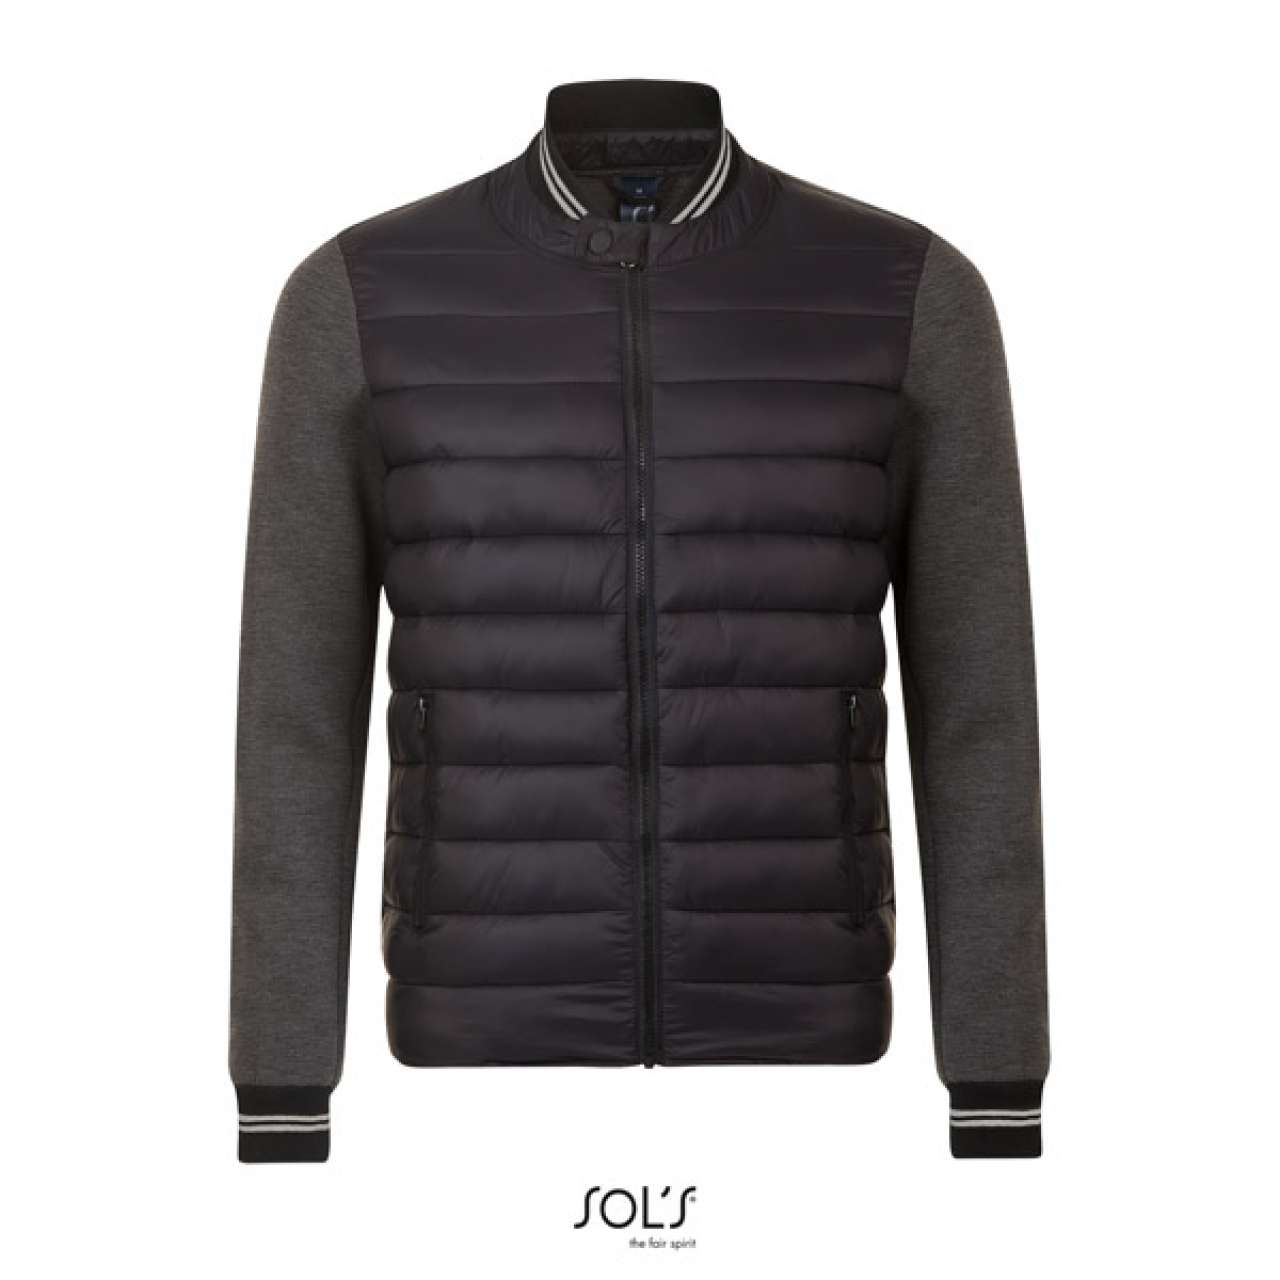 SOL'S VOLCANO - UNISEX TWO-MATERIAL JACKET